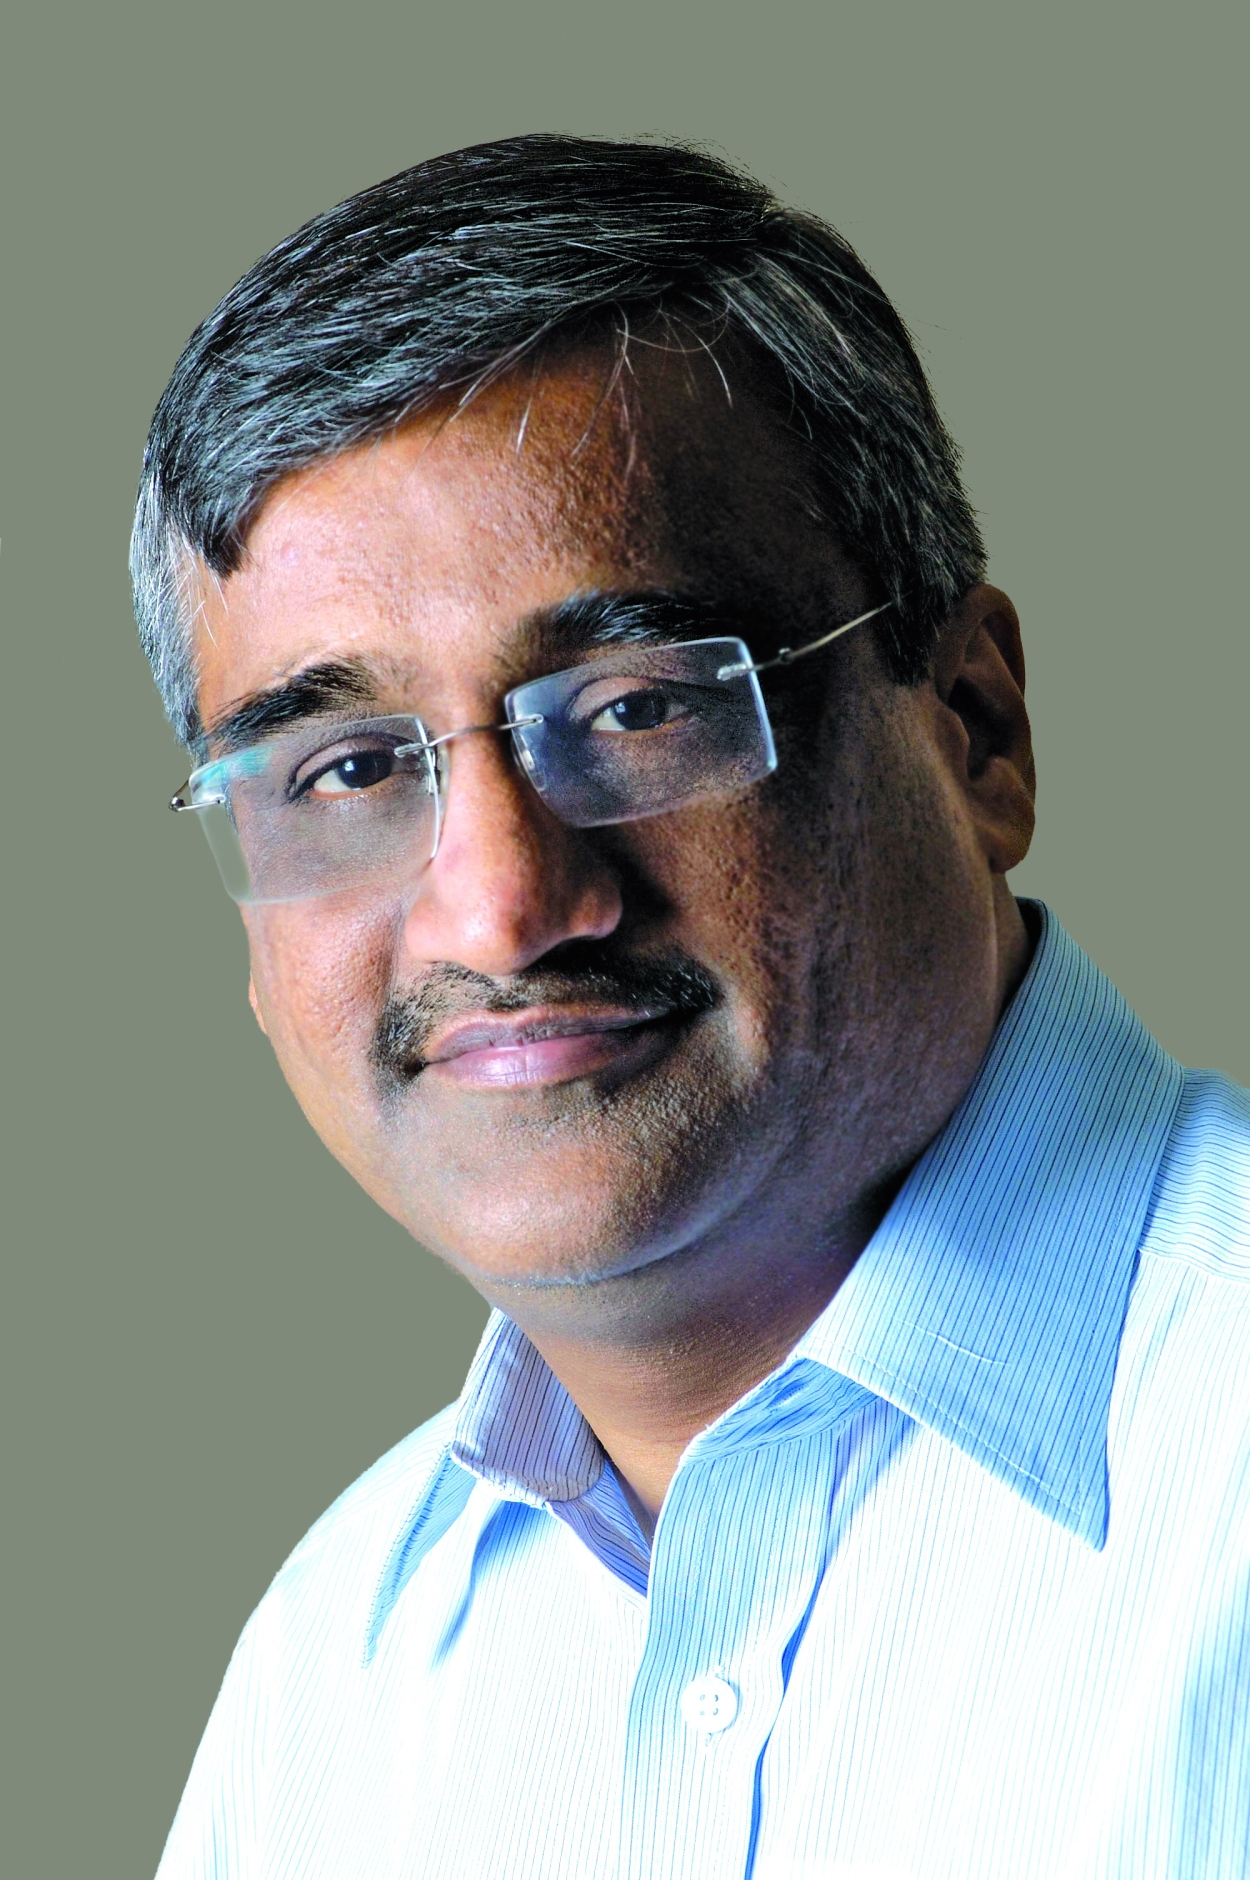 Pricing is not the way we want to win: Kishore Biyani